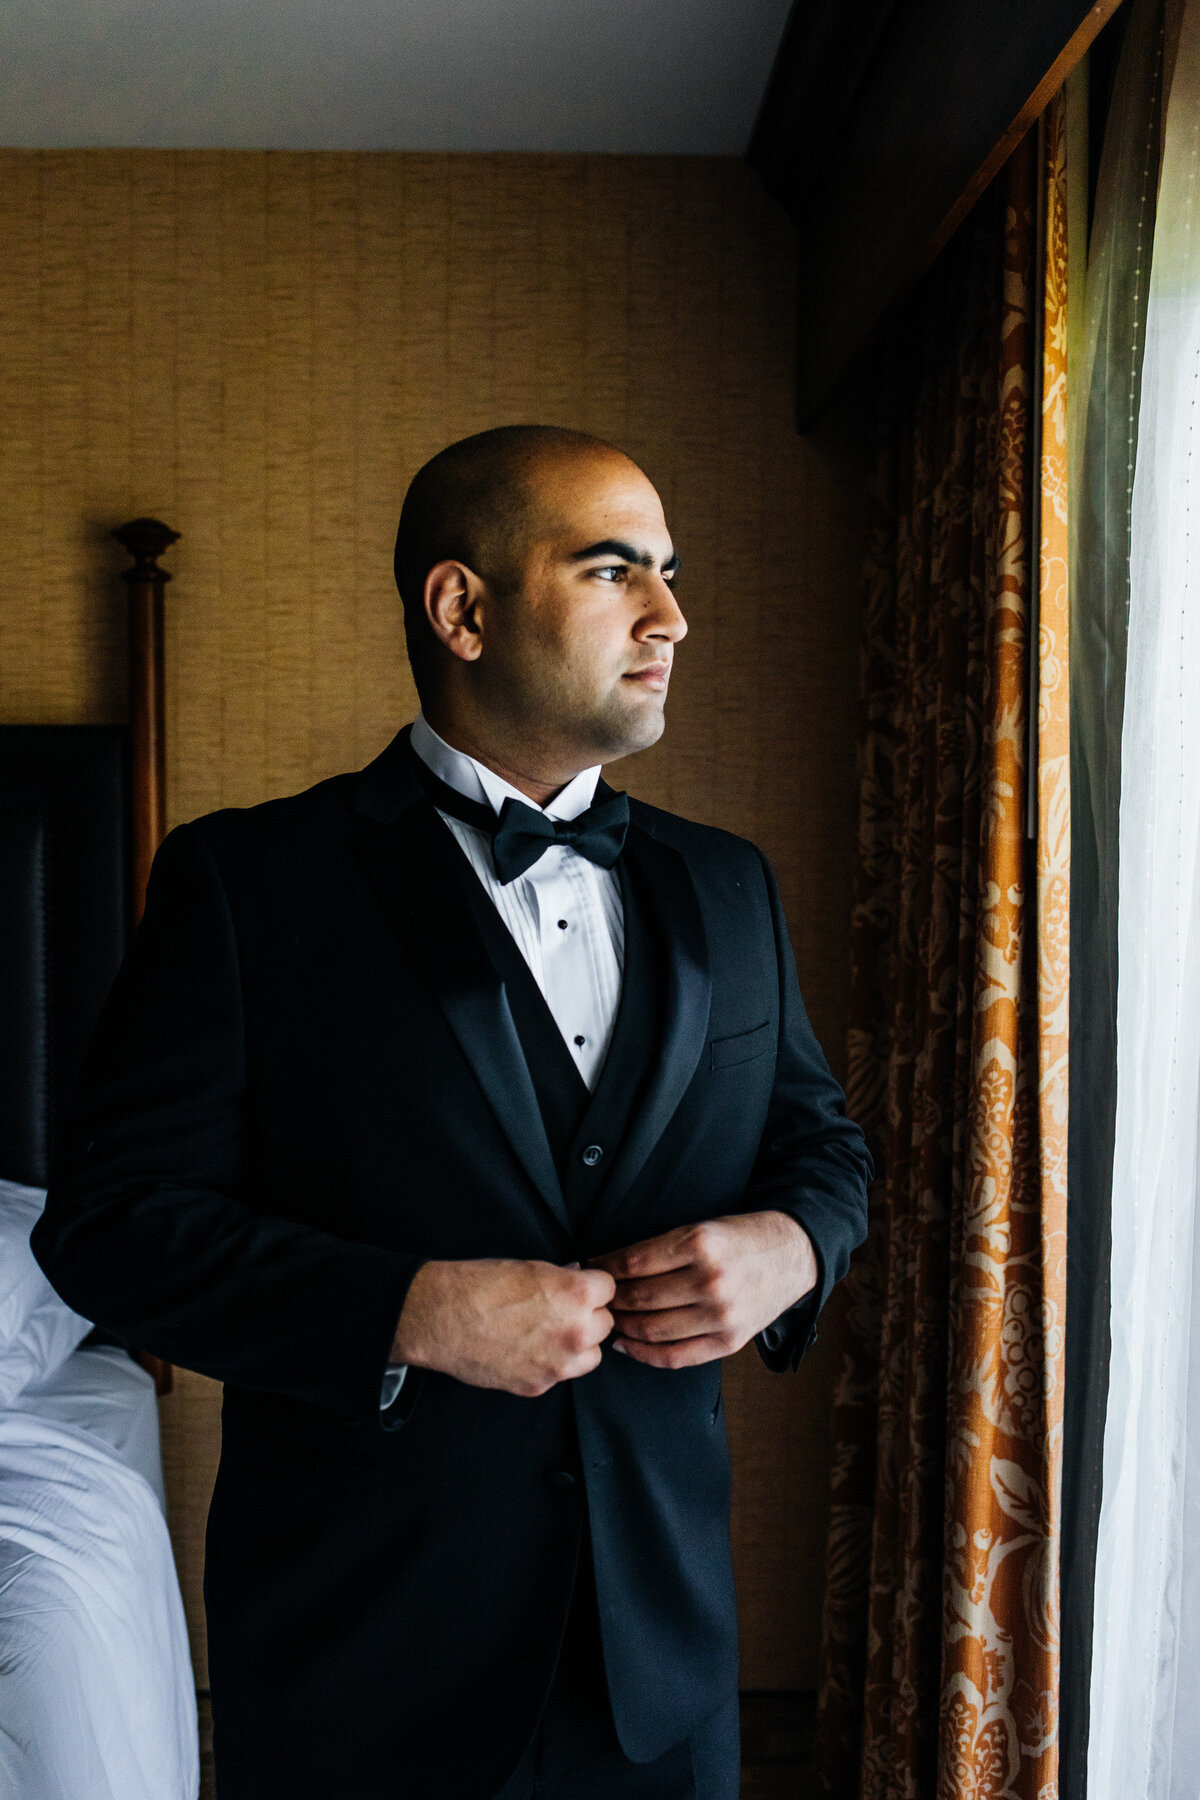 lake-arrowhead-resort-and-spa-elopement-big-bear-elopement-socal-wedding-photographer-5